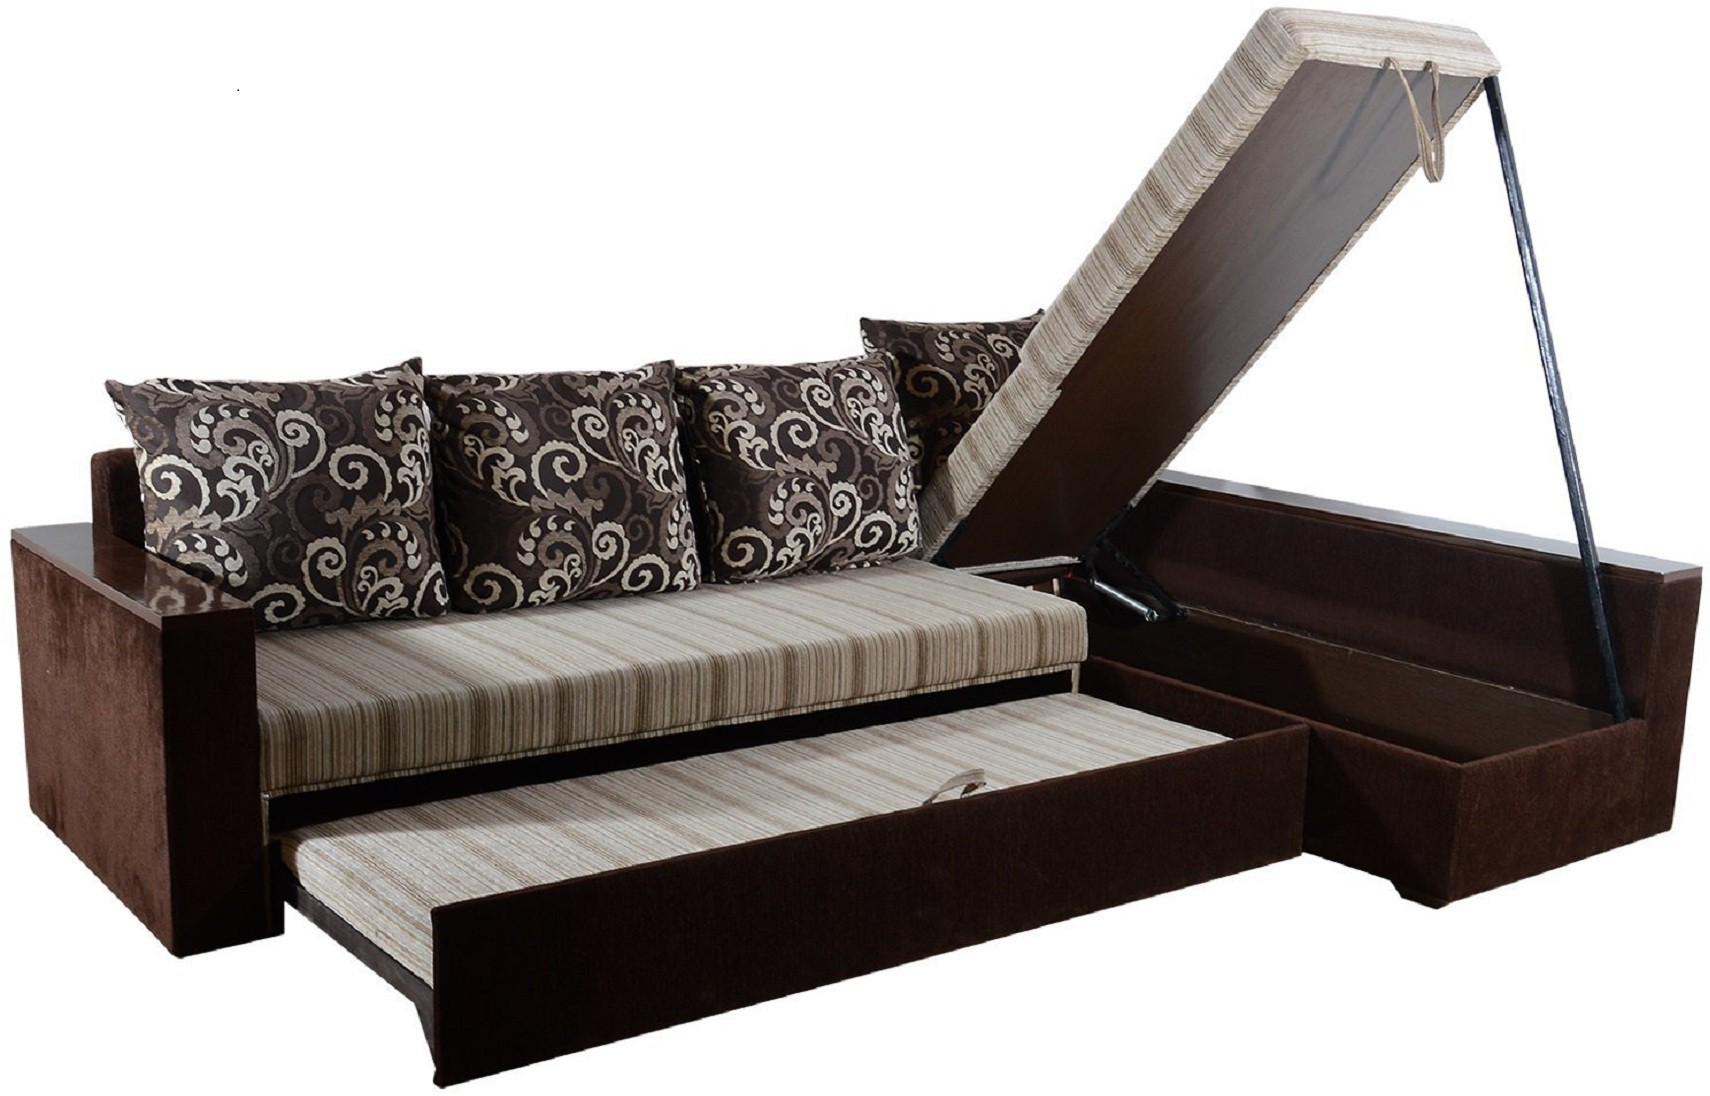 View RAWAT CZ Solid Wood 4 Seater Standard(Finish Color - Multicolour) Furniture (RAWAT)